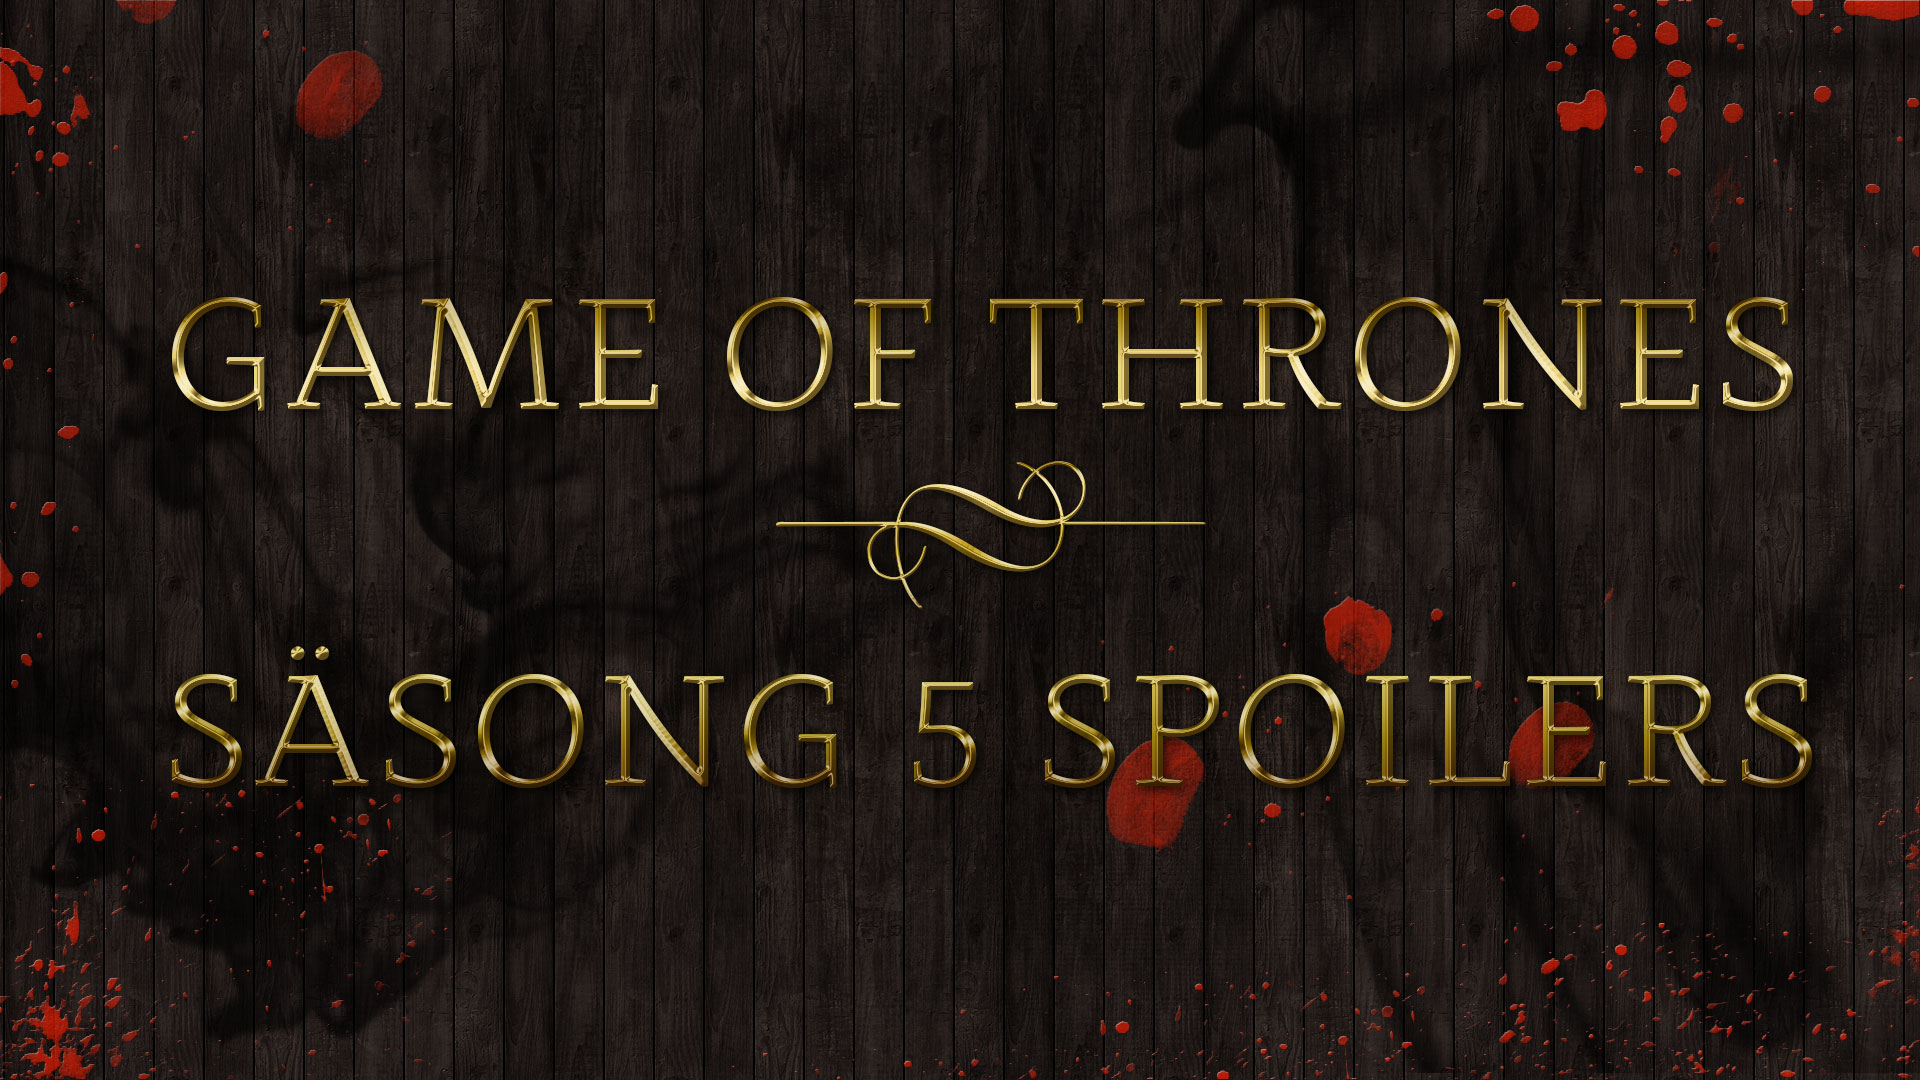 Game Of Thrones SÄsong 5 avsnitt 10 spoilers